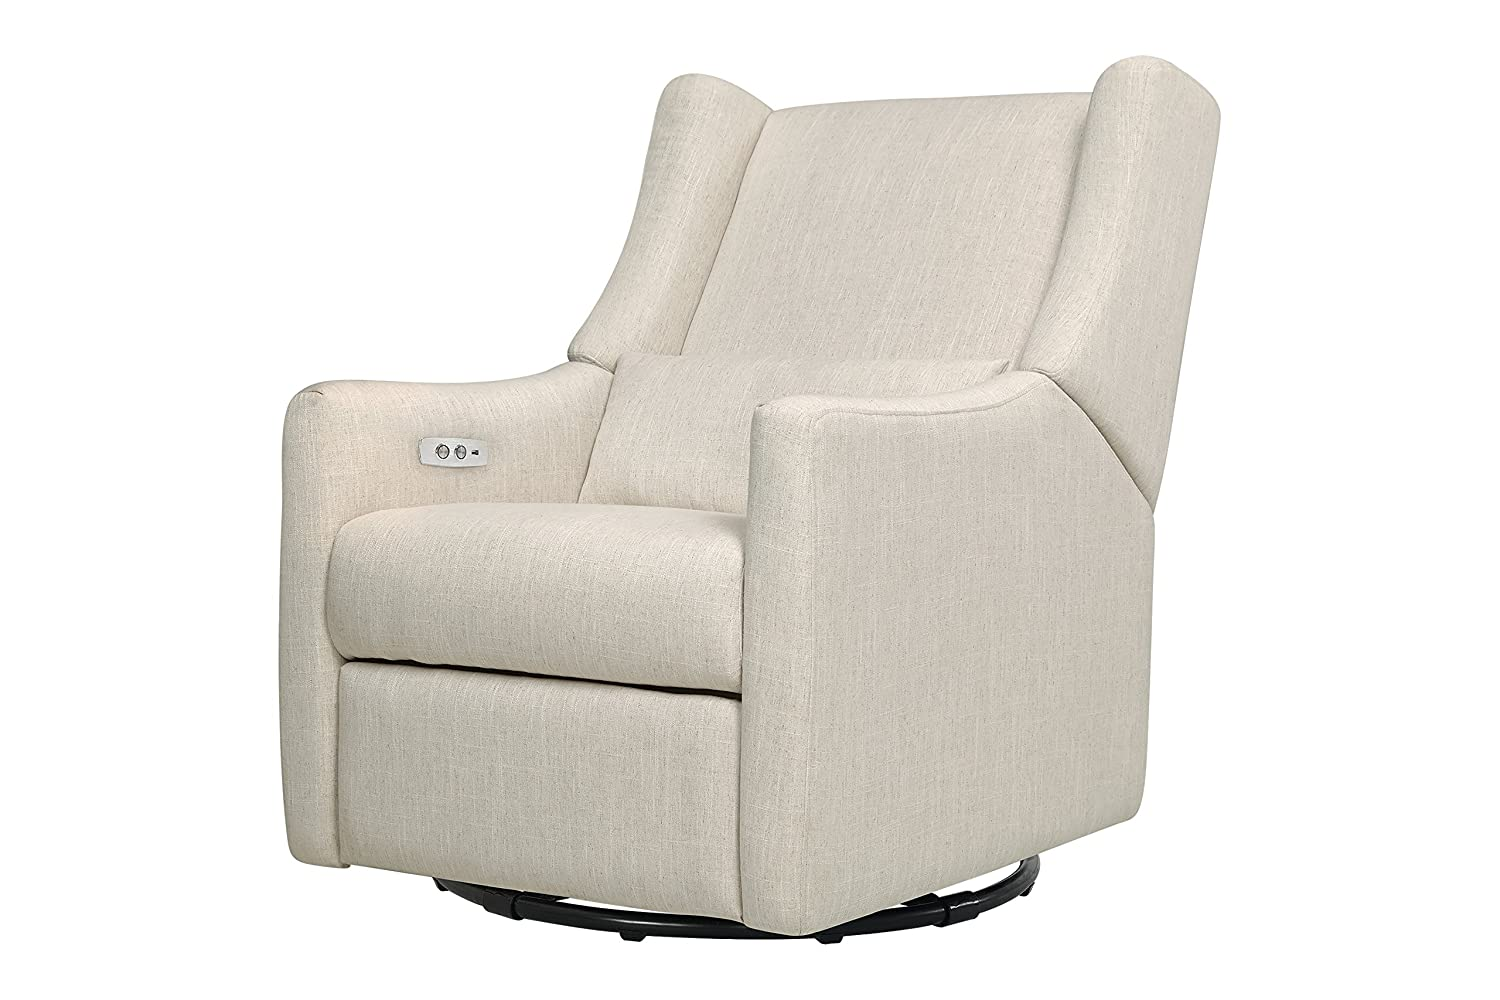 Babyletto Kiwi Electronic Recliner and Swivel Glider with USB Port, White Linen The MDB Family M11288LNWHT